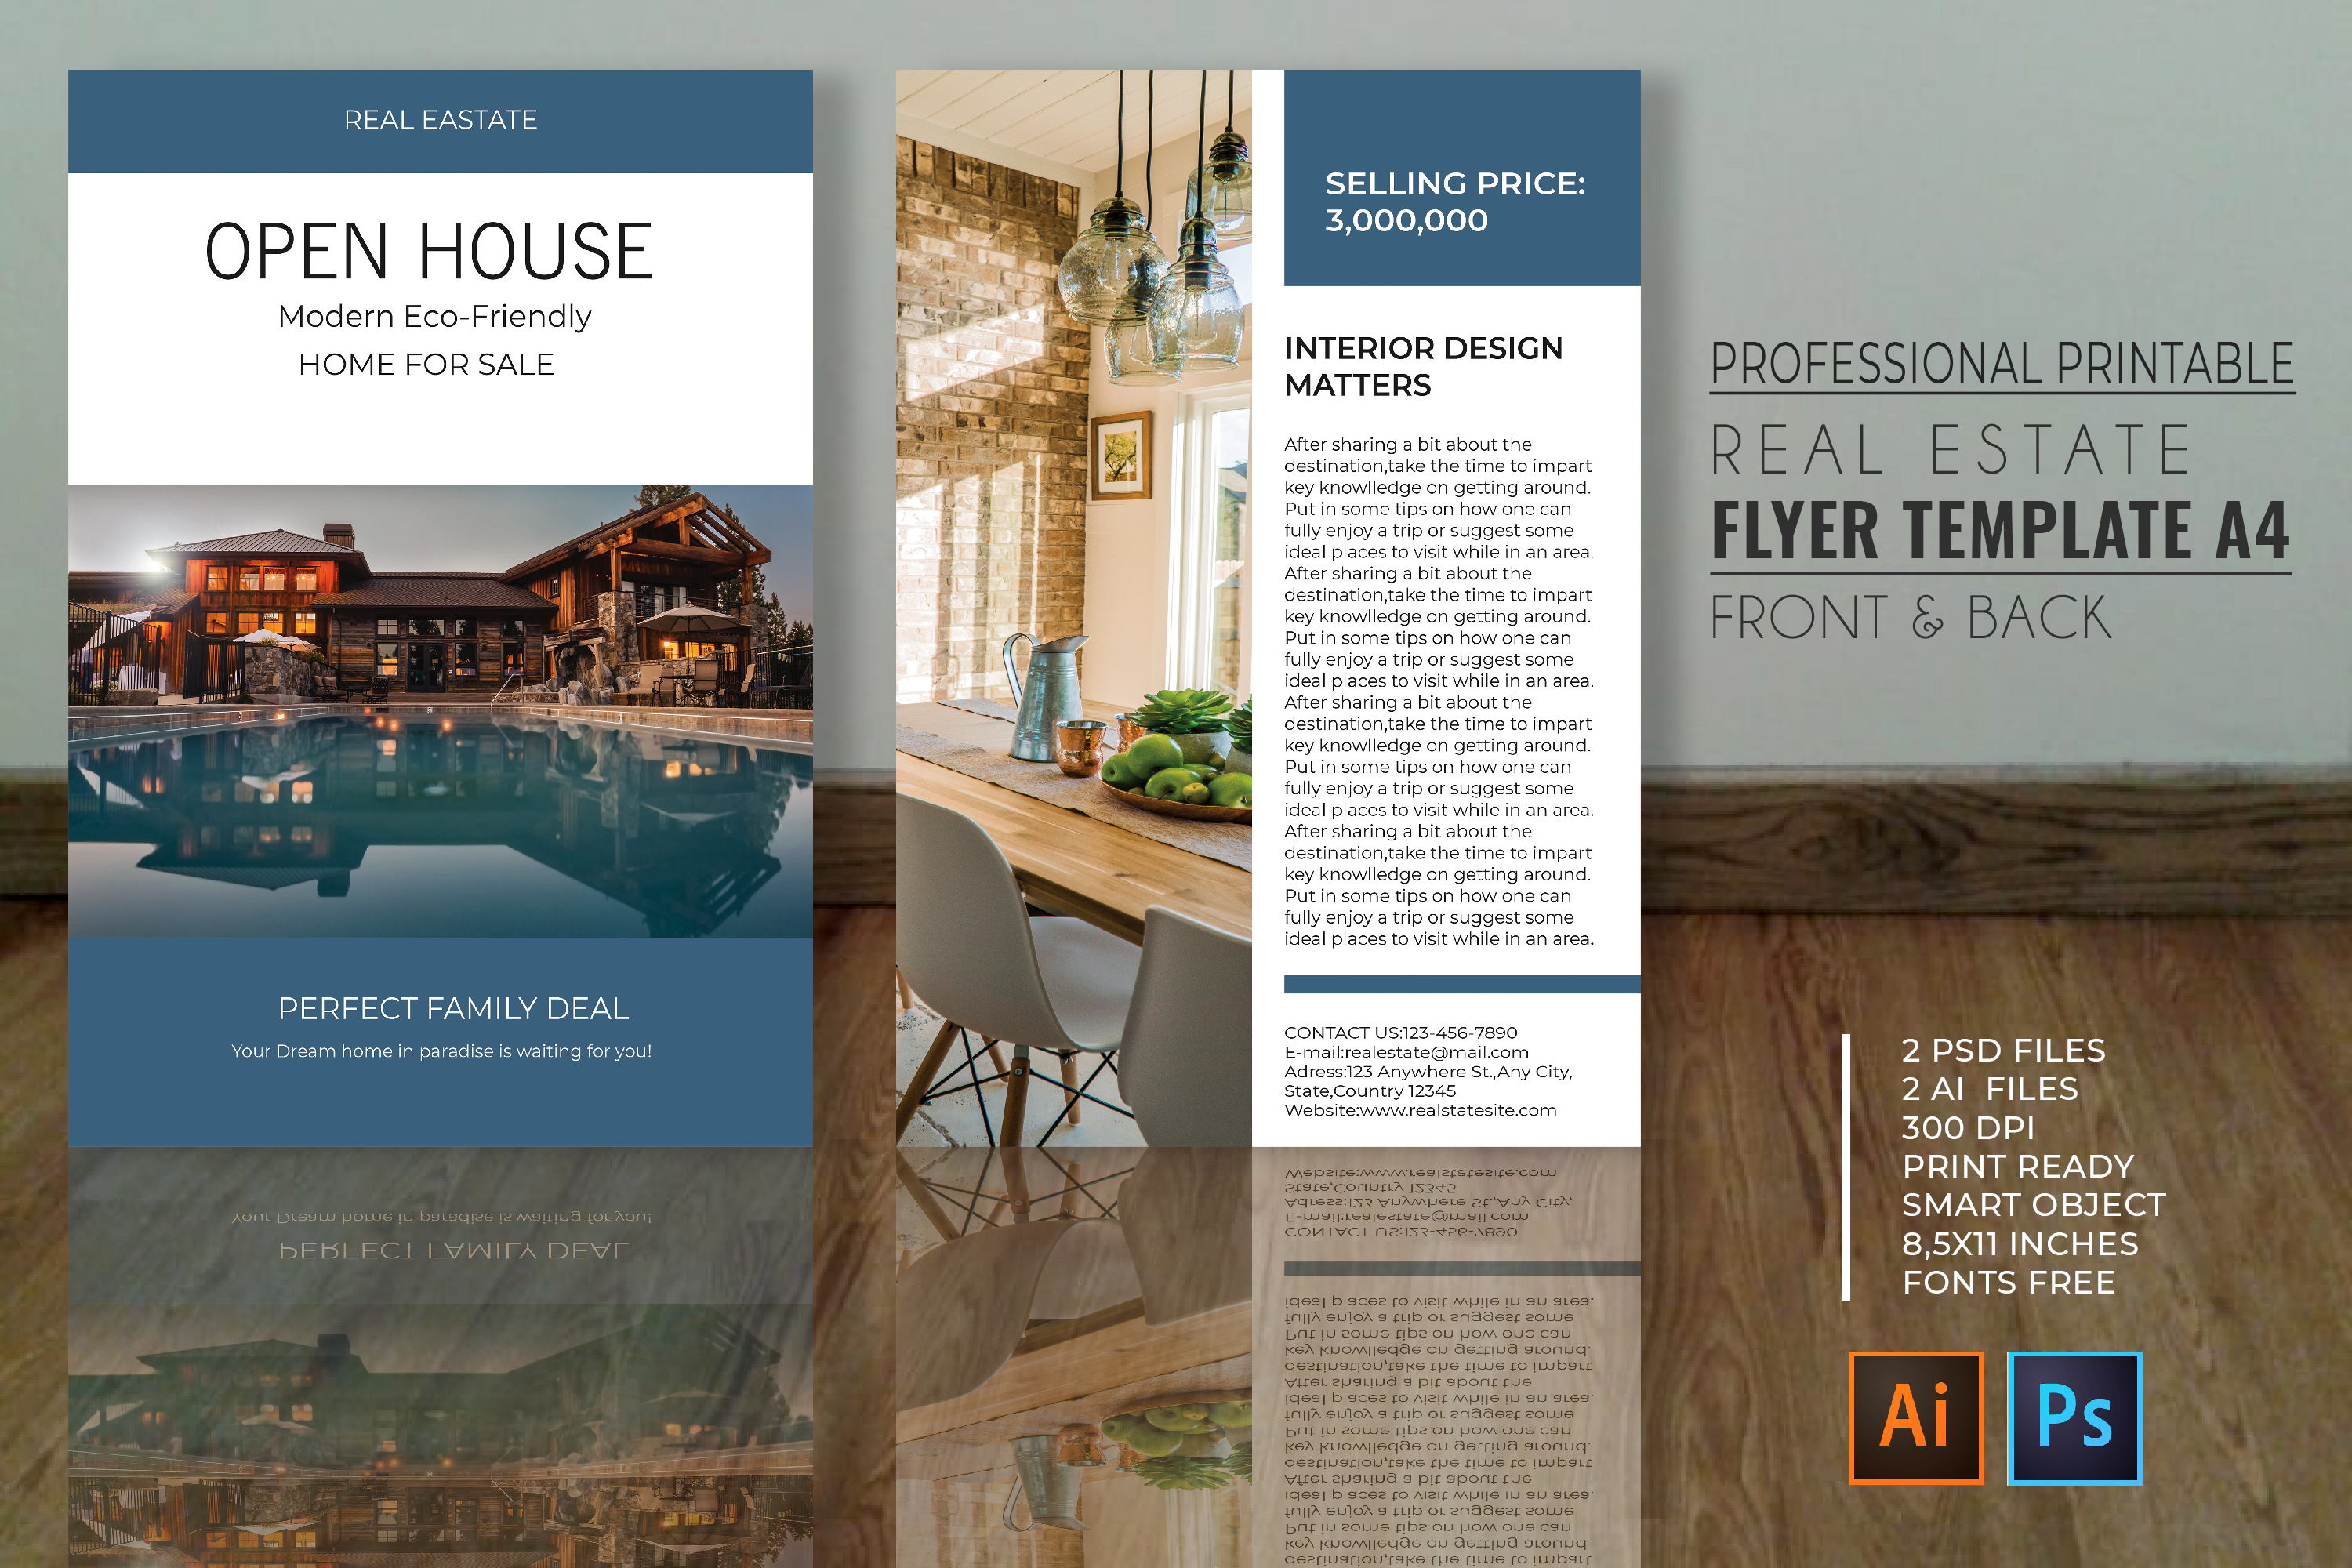 Professional Real Estate Flyer A4 - Printable Templates example image 1